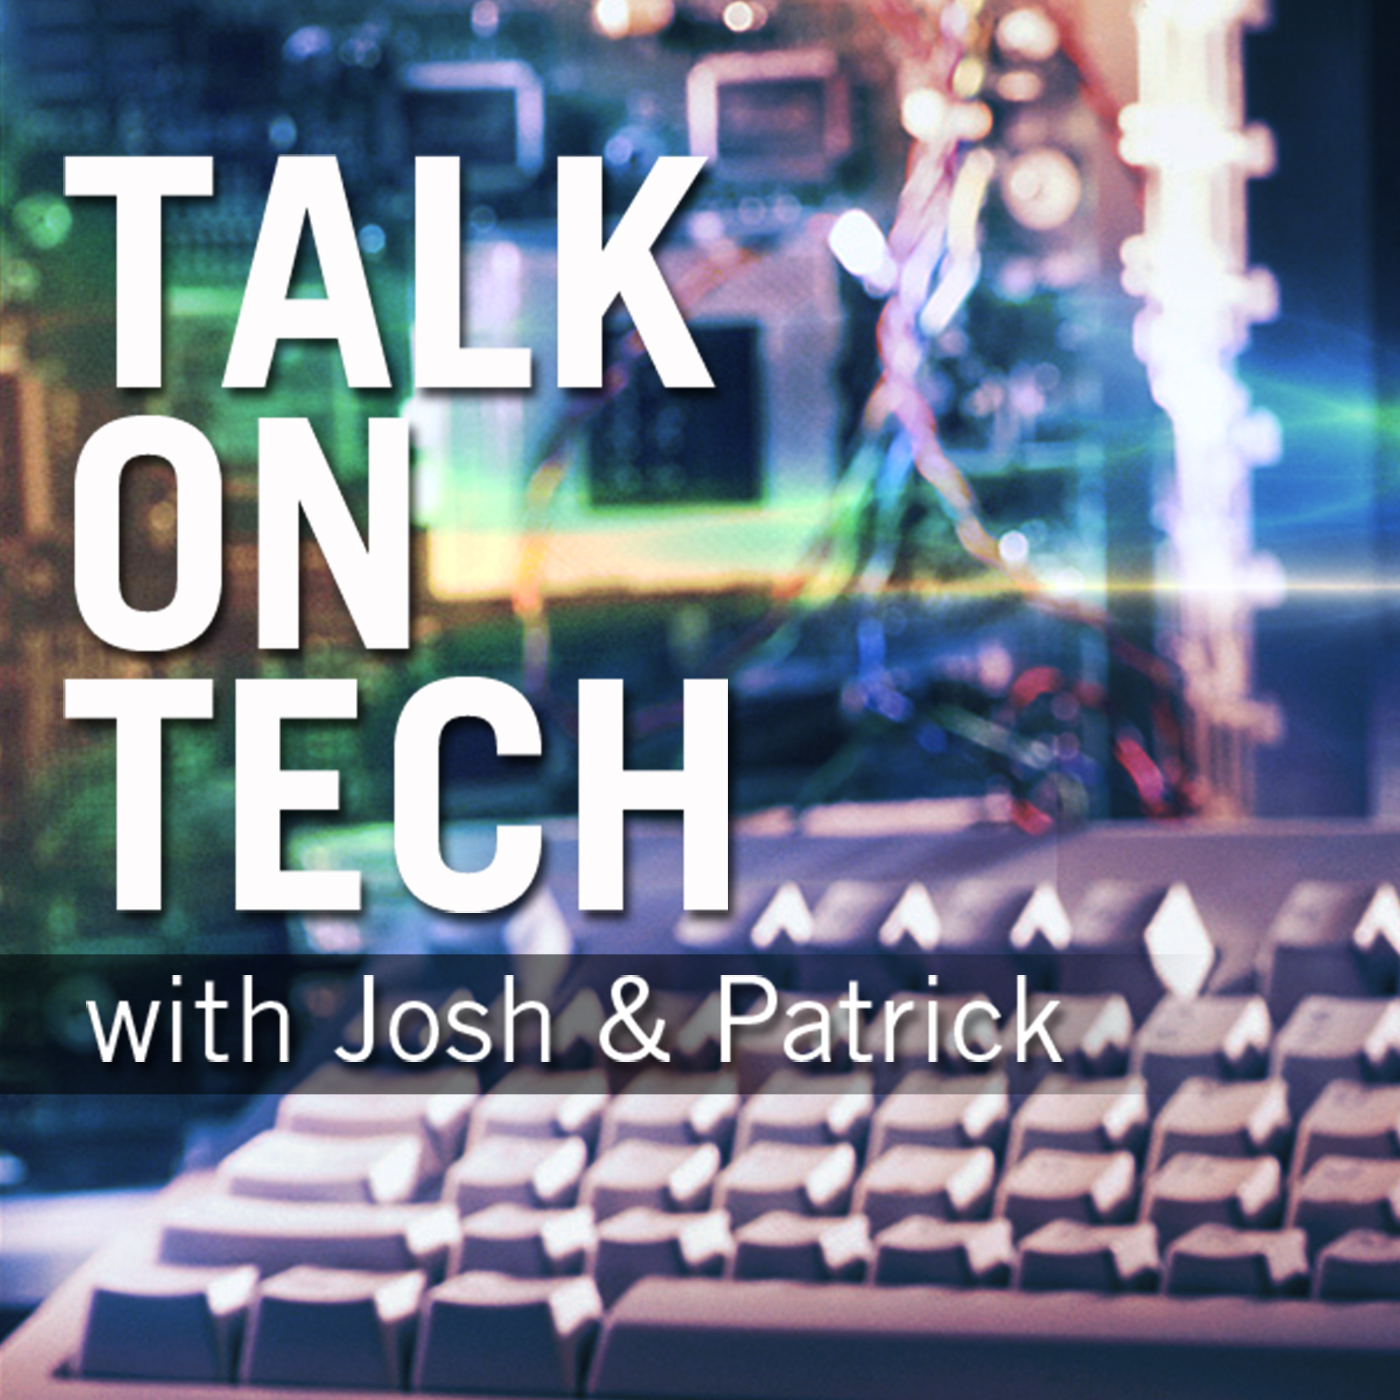 Talk on Tech with Josh & Patrick